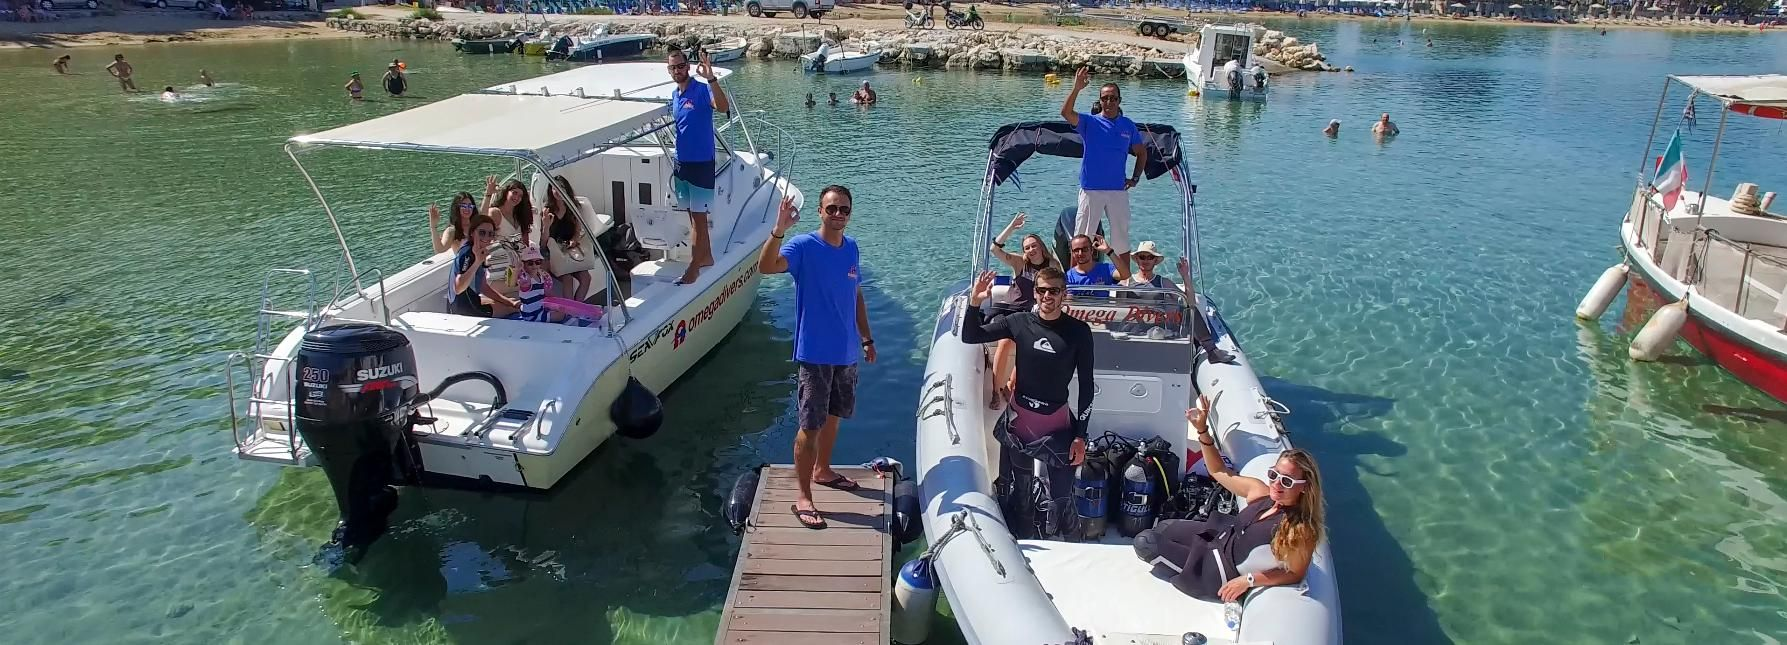 Chania: 3-Hour Boat Trip with Guided Snorkeling